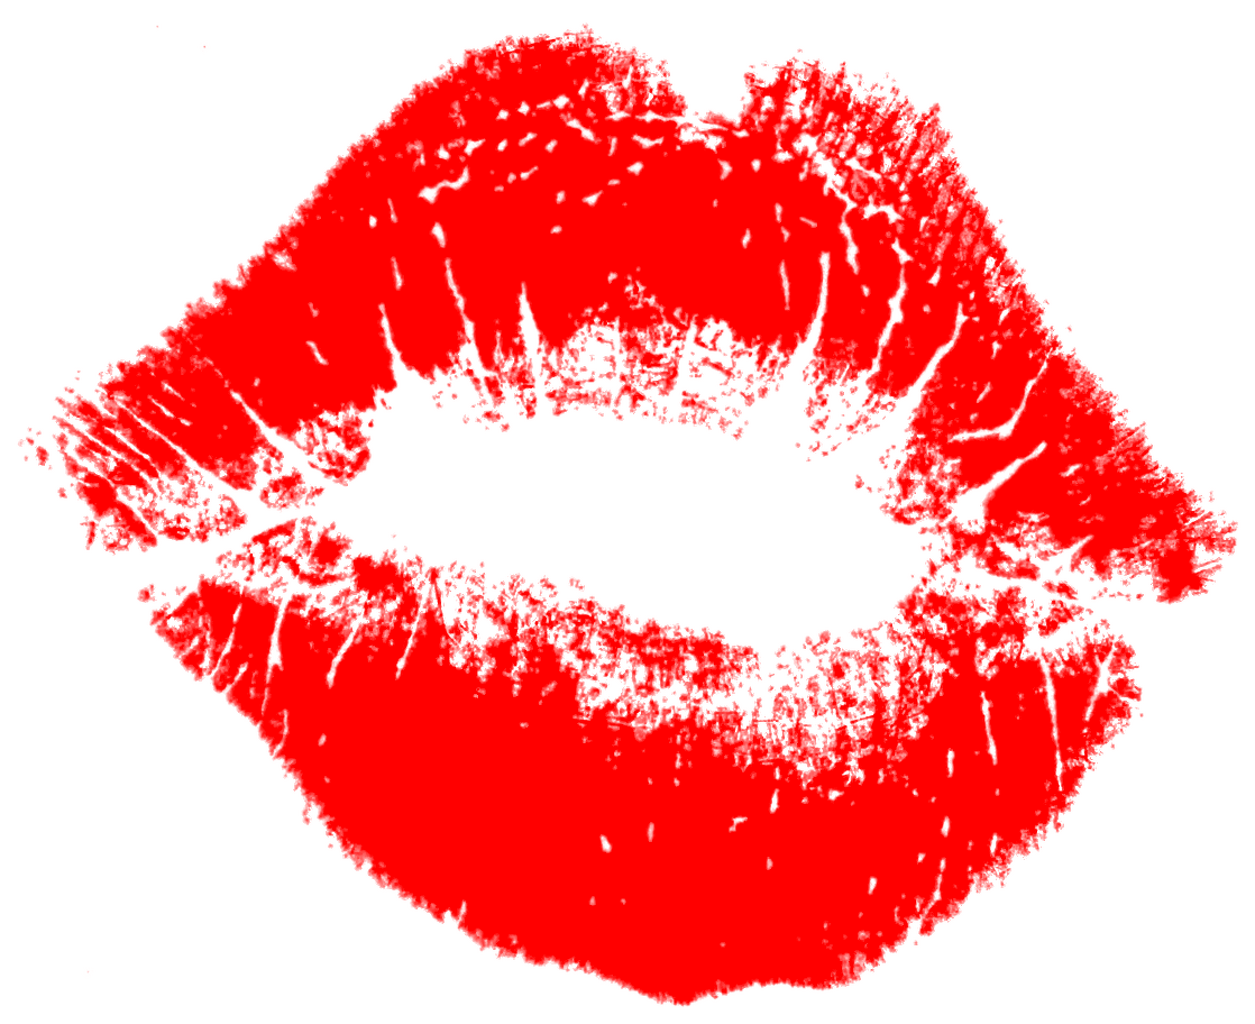 Clipart mouth transparent background. Lips png picture web